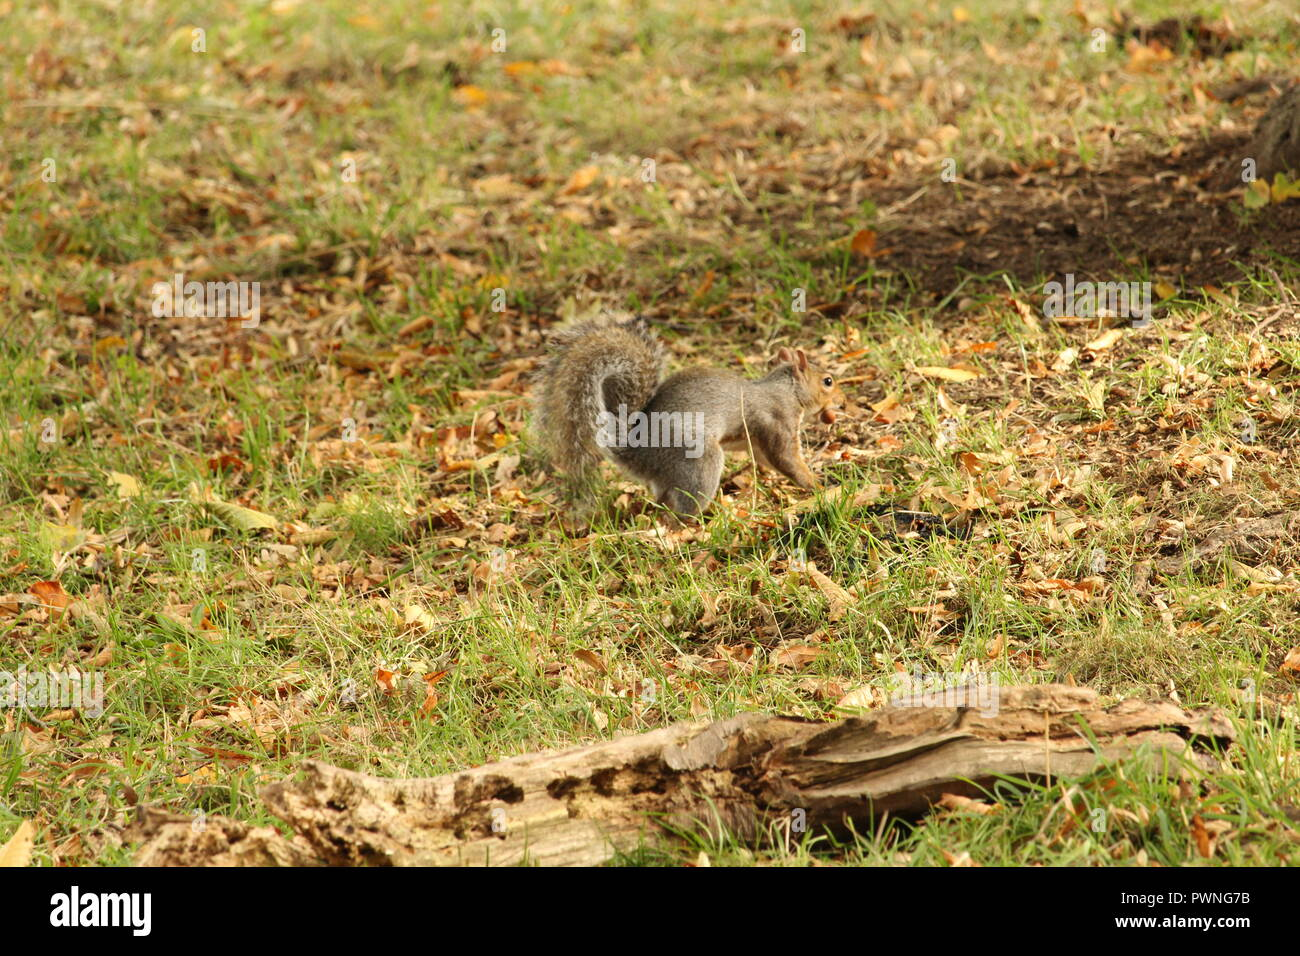 Autumnal Scene's - A lone British squirrel with an acorn in his mouth  making his way among Autumn leaves. - Stock Image